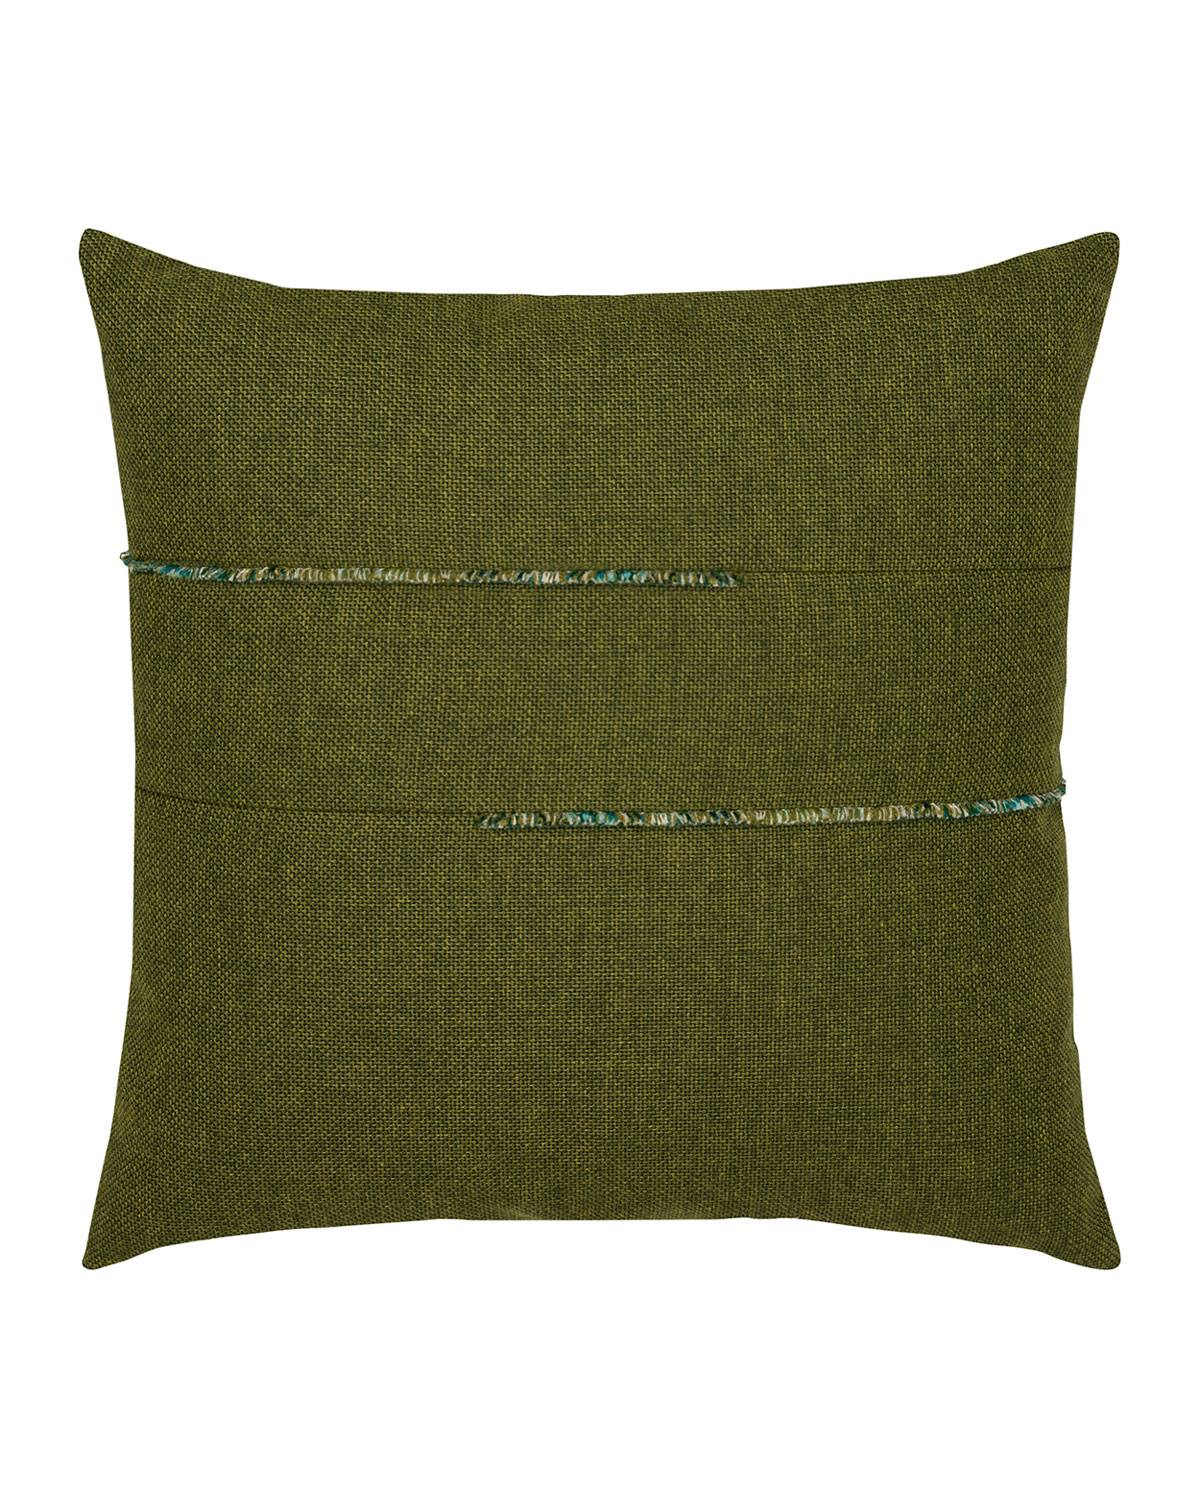 Elaine Smith Garden Sunbrella Pillow, Green